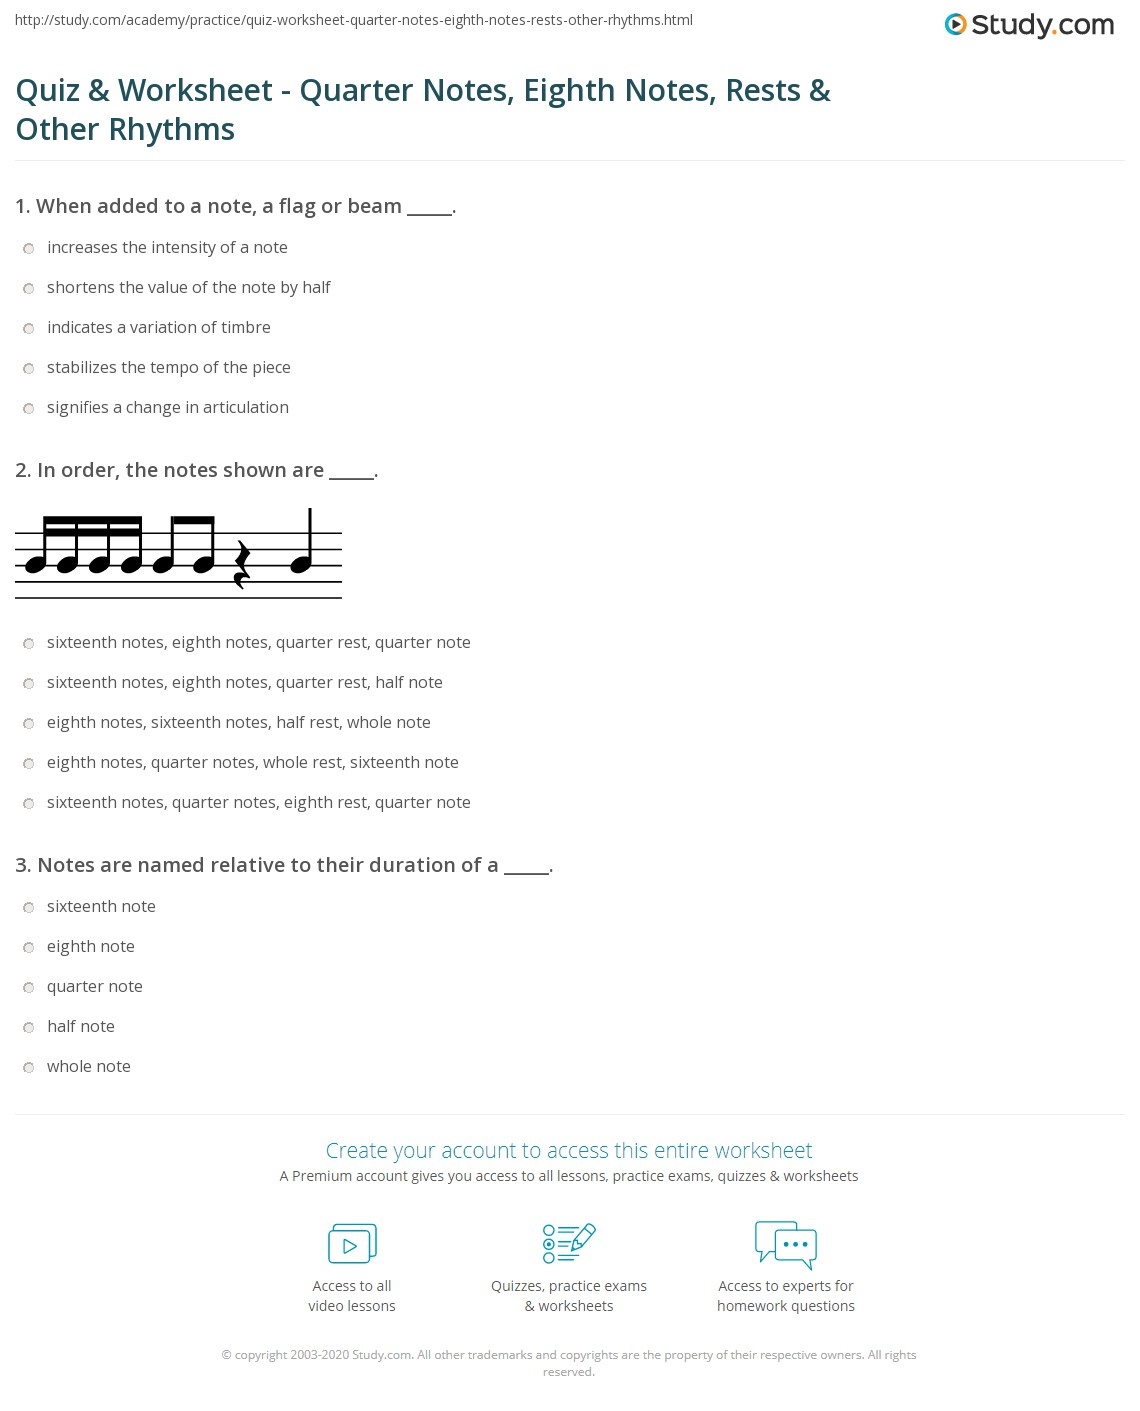 How To Change The Time Signature On Rhythm Calculator